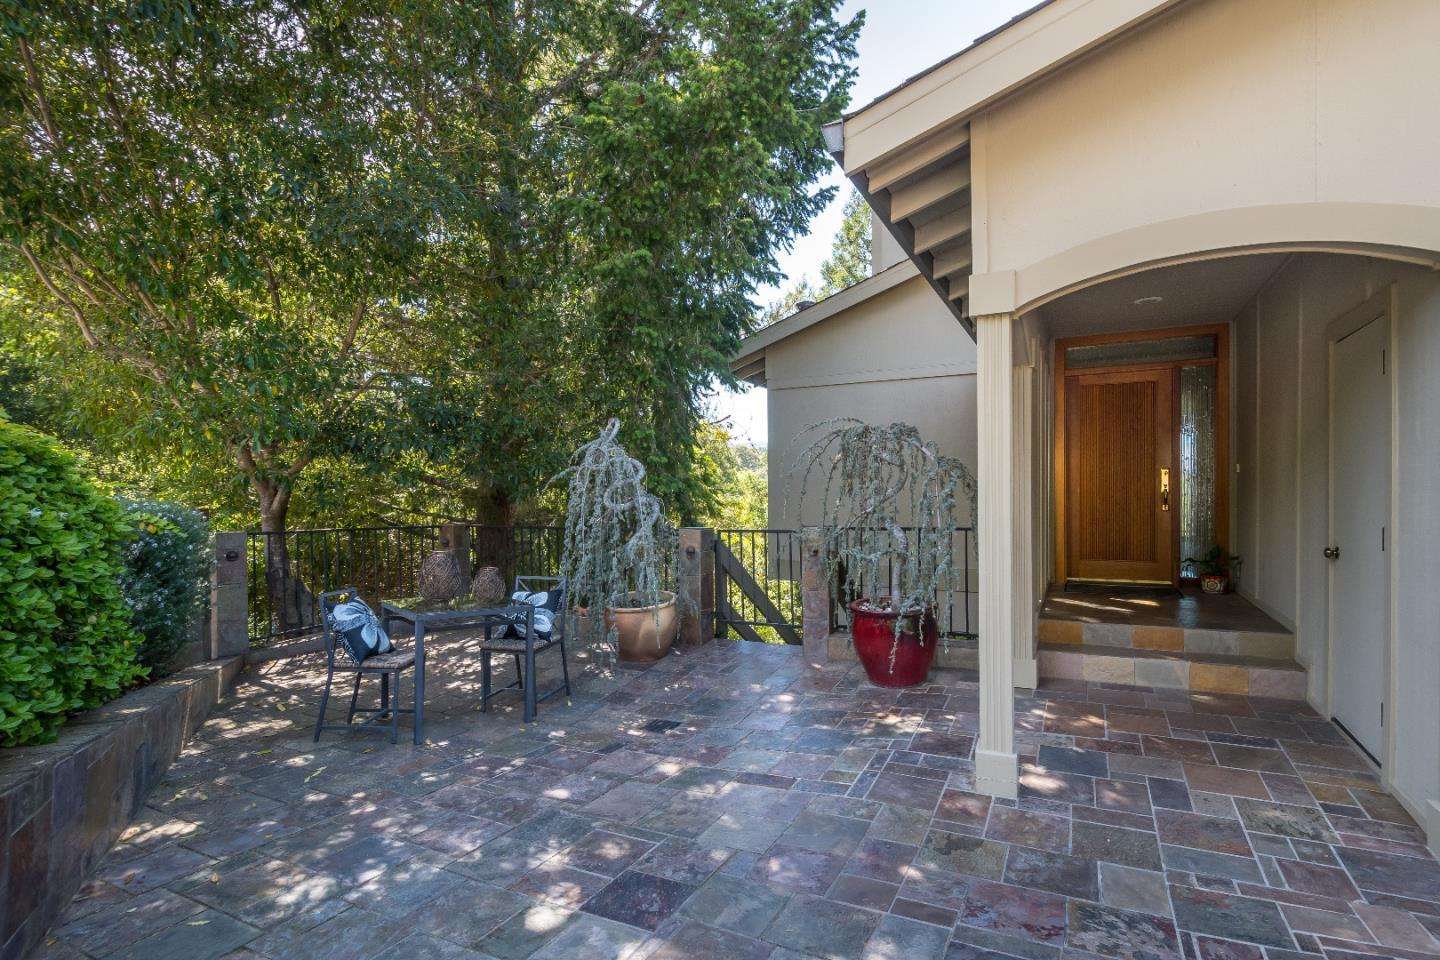 100 Coquito Way, Portola Valley, CA 94028